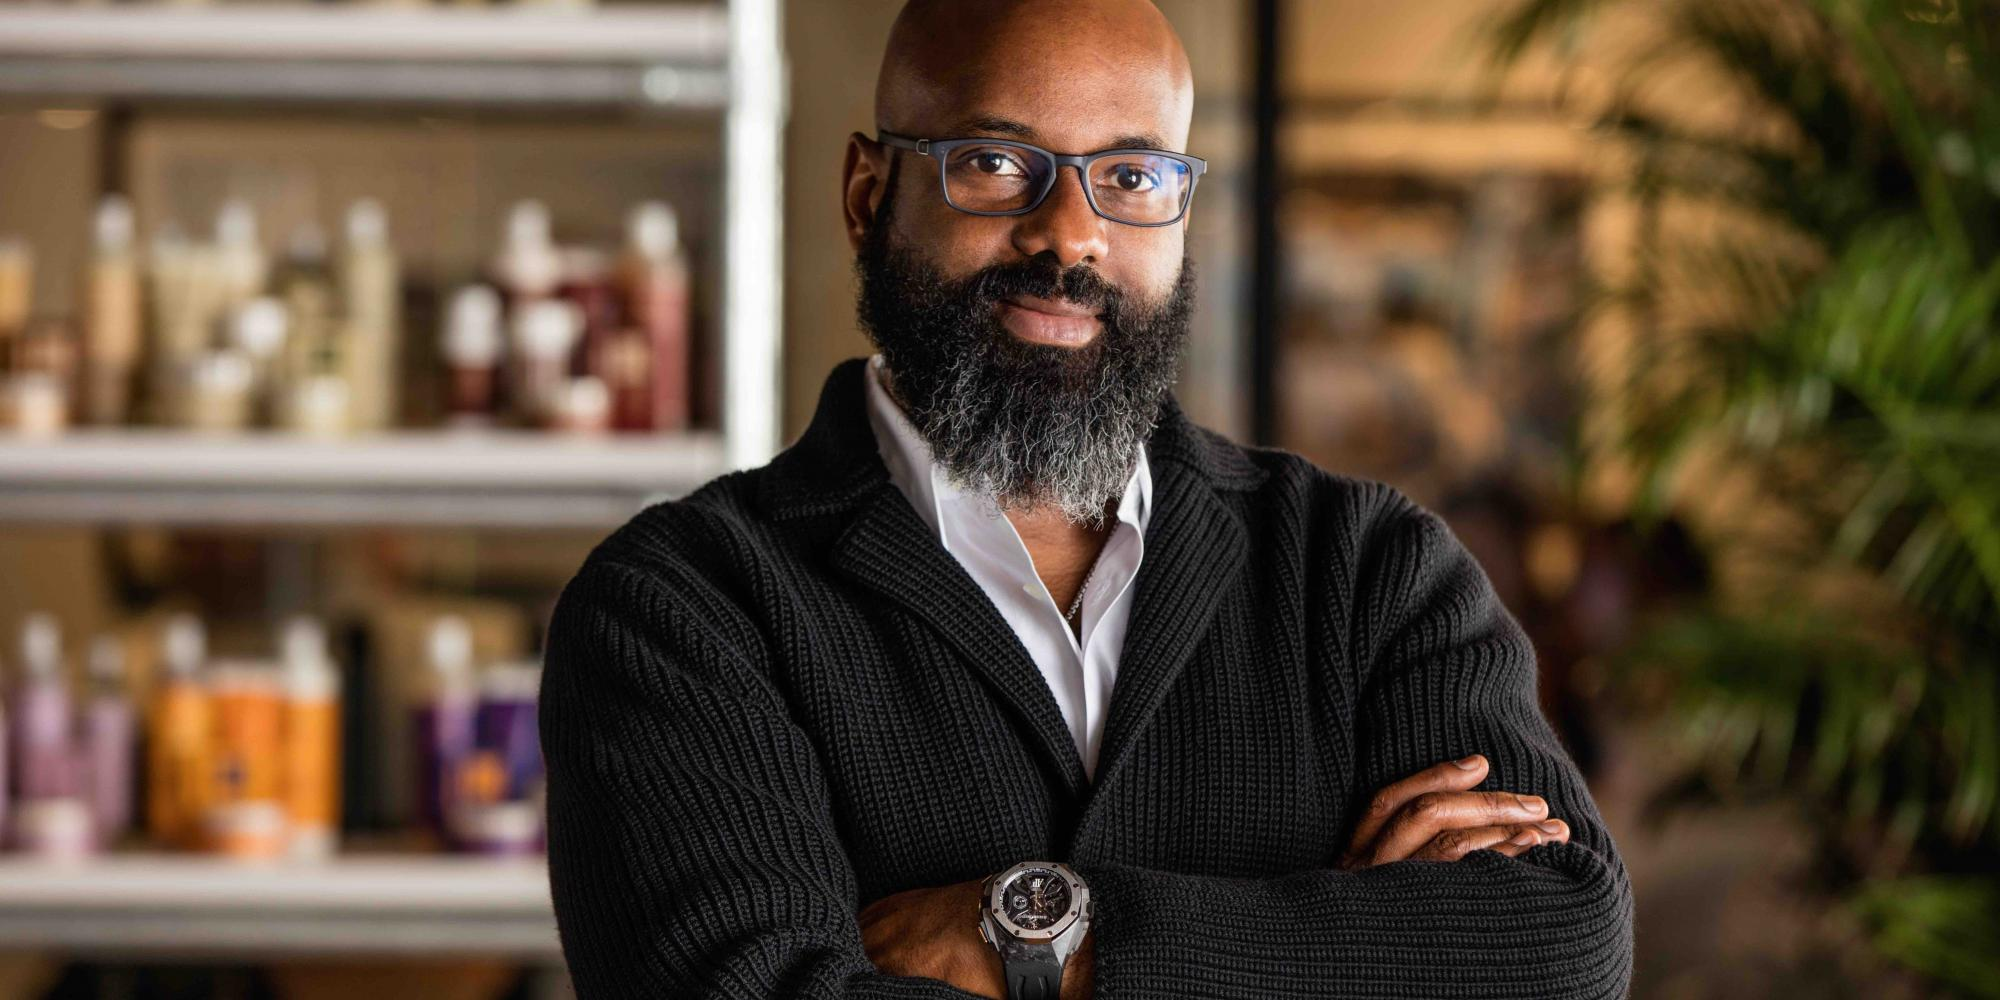 Sundial Brands CEO Richelieu Dennis On What Beauty Entrepreneurs Should And Shouldn't Do When Seeking Capital